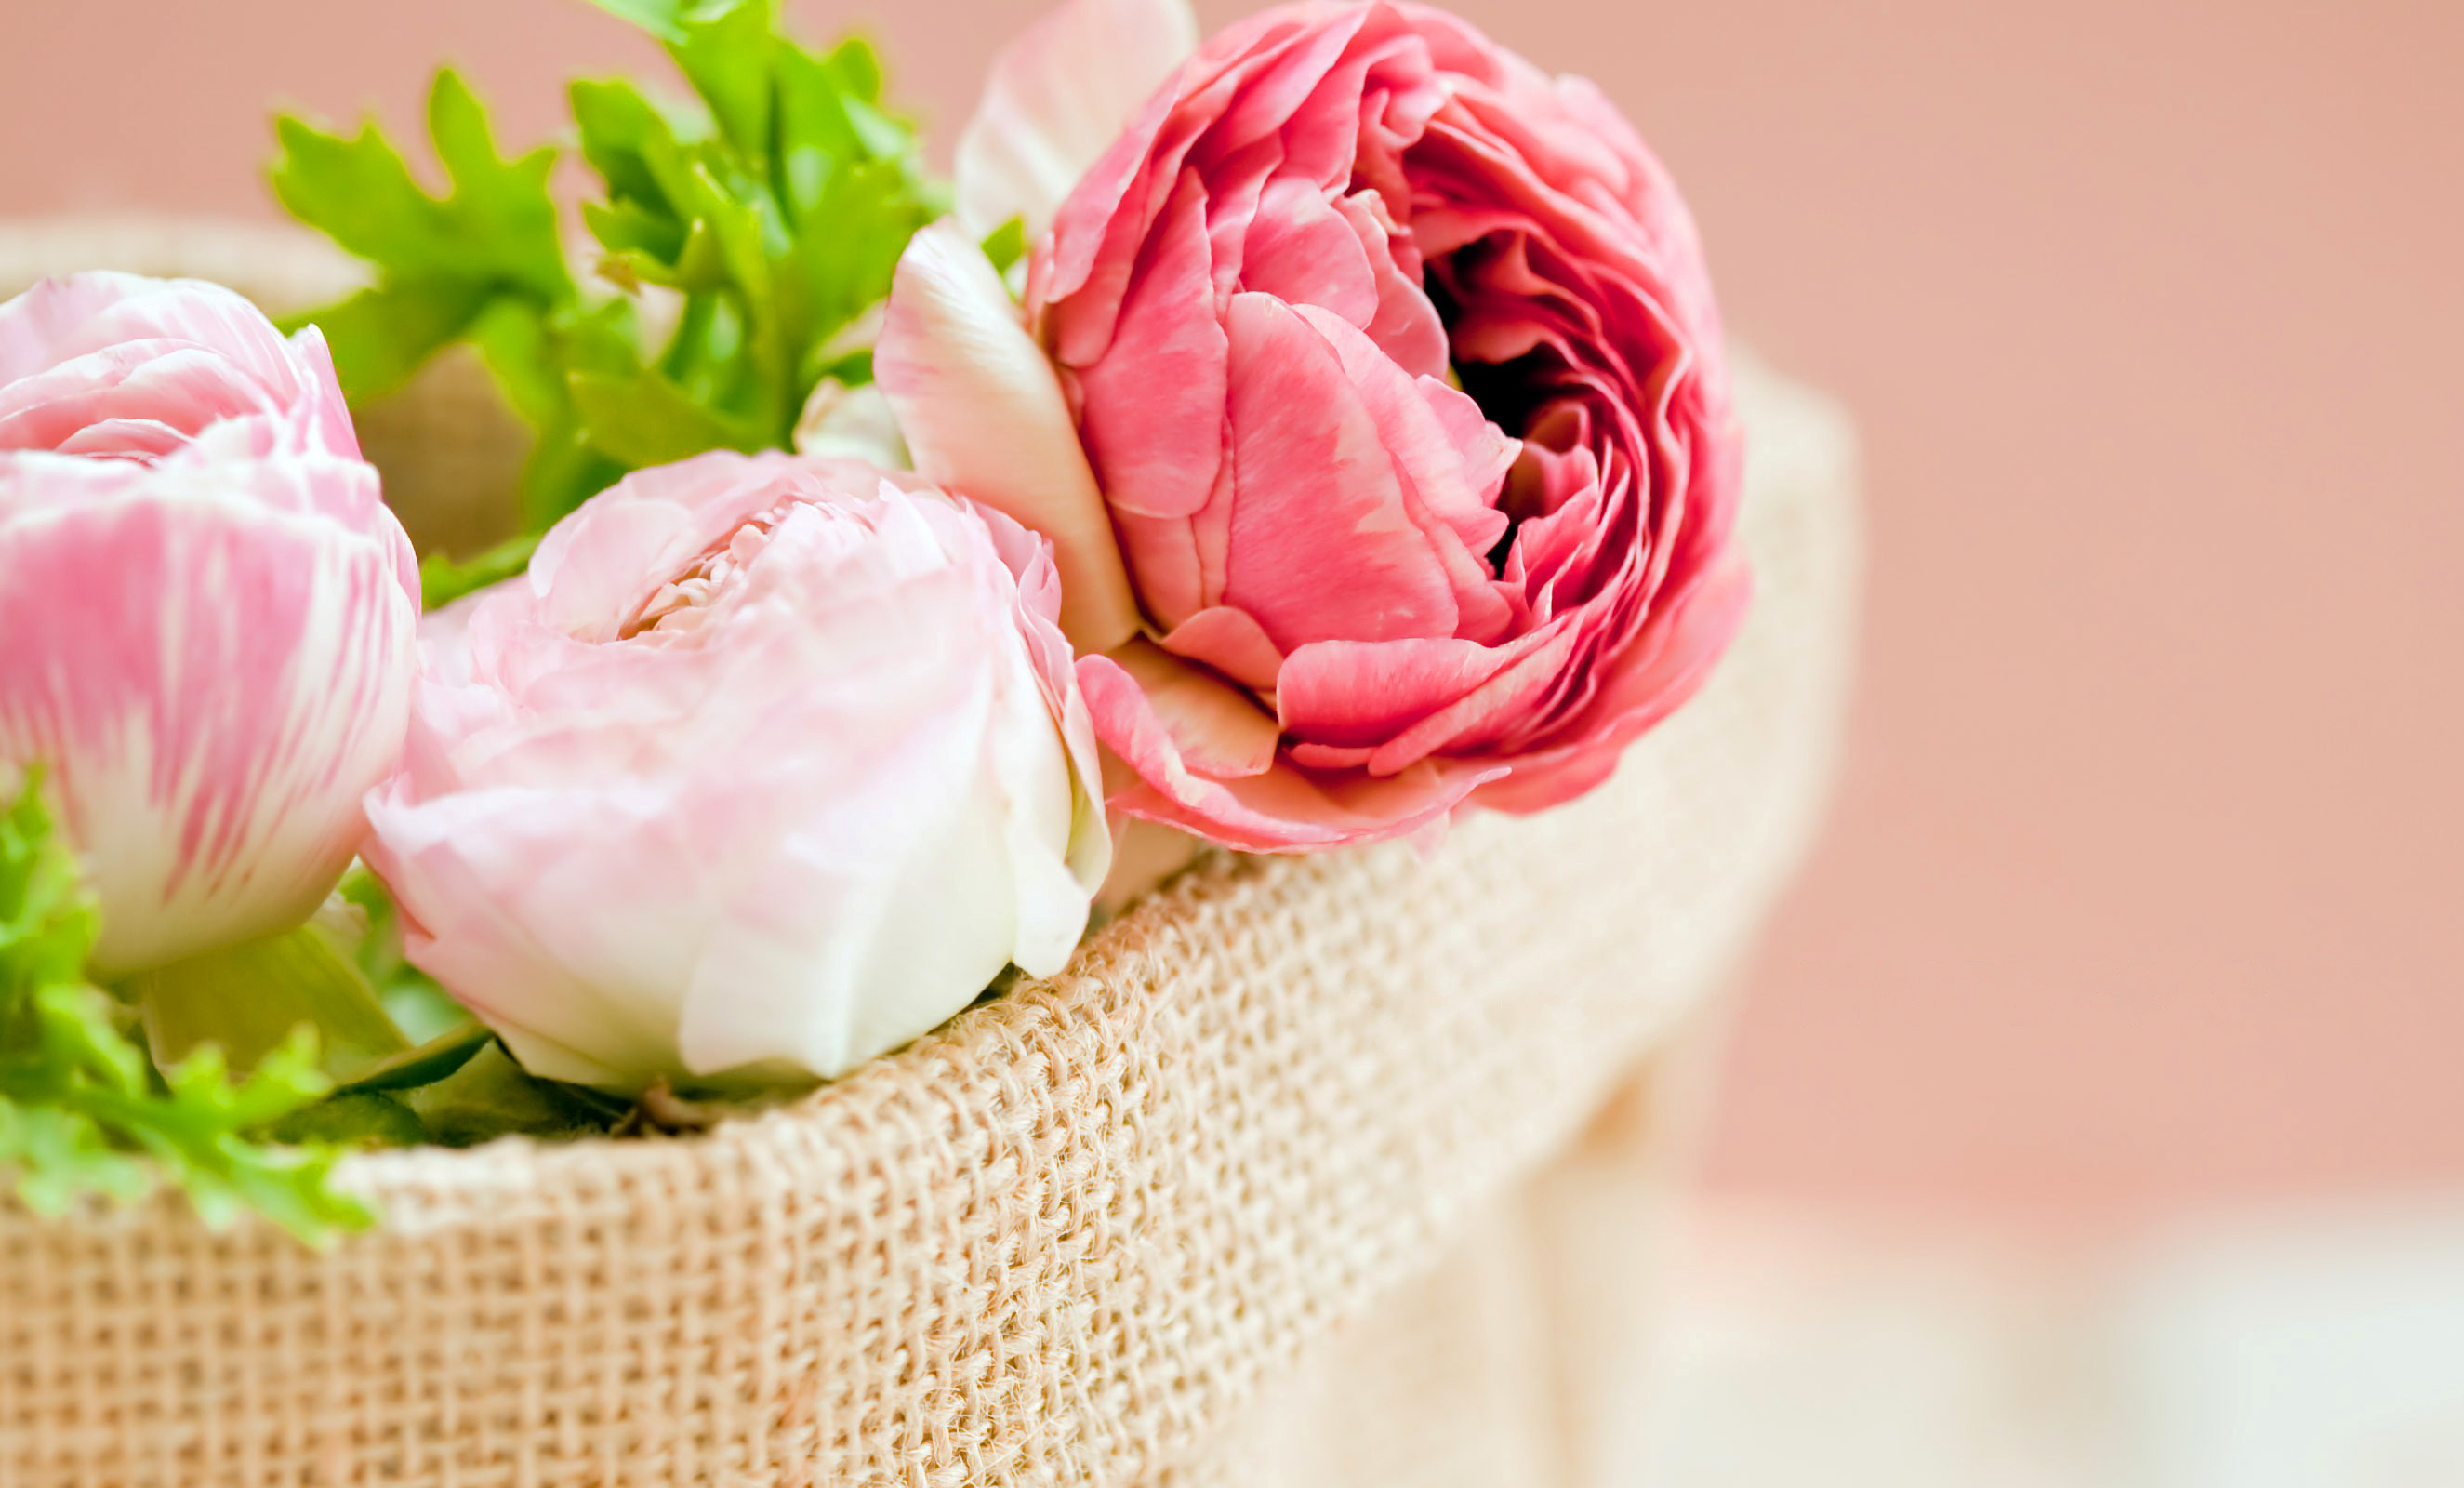 Wall Paper Wide Pink Rose Colours Soft Nature Flower: Rose Full HD Wallpaper And Background Image